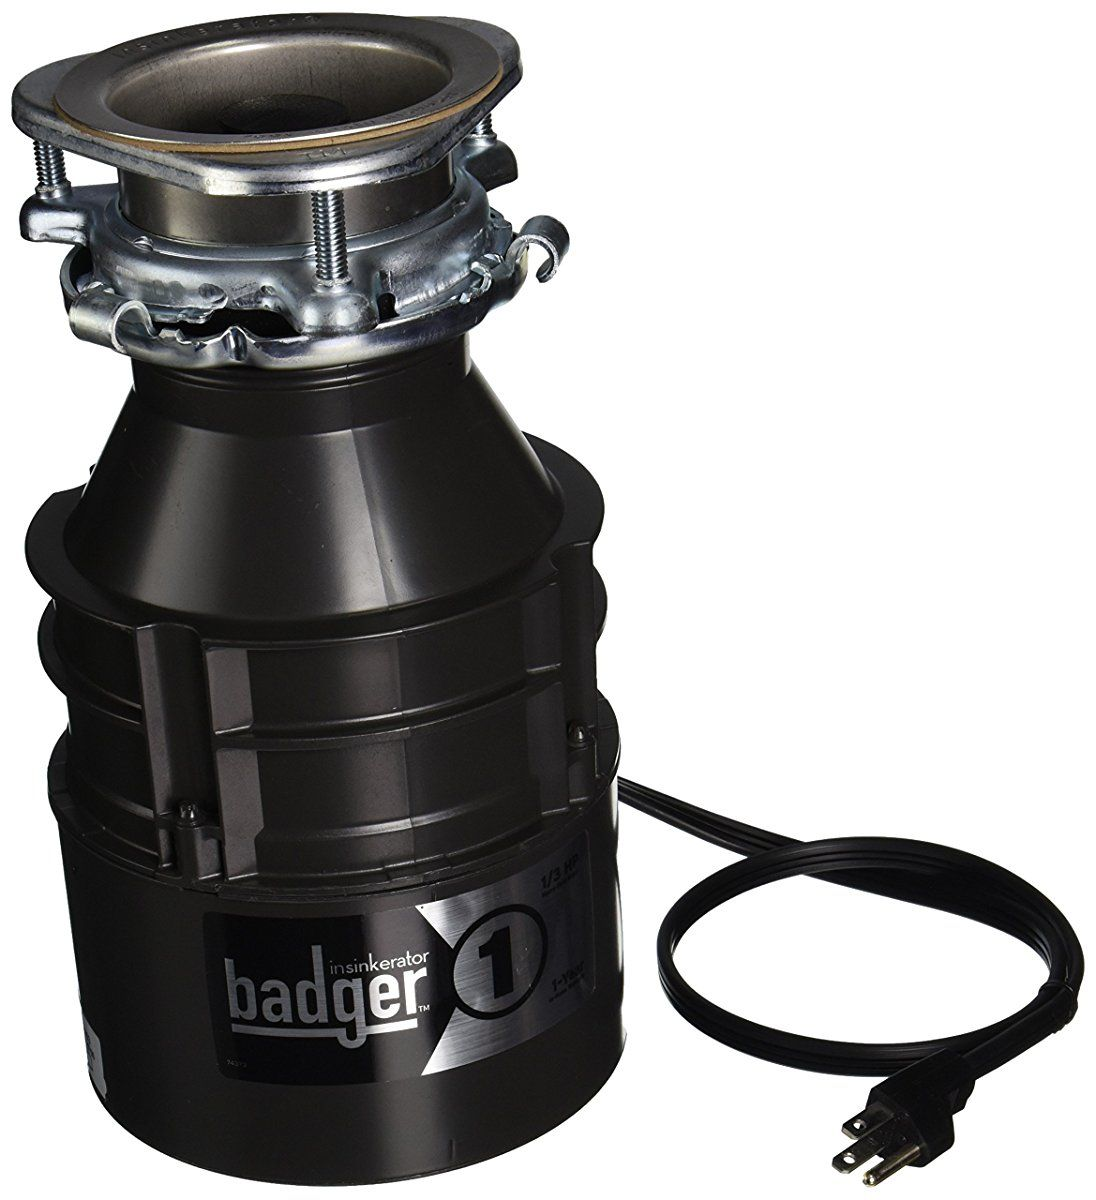 Insinkerator BADGER1CORD Household Food Waste Disposer